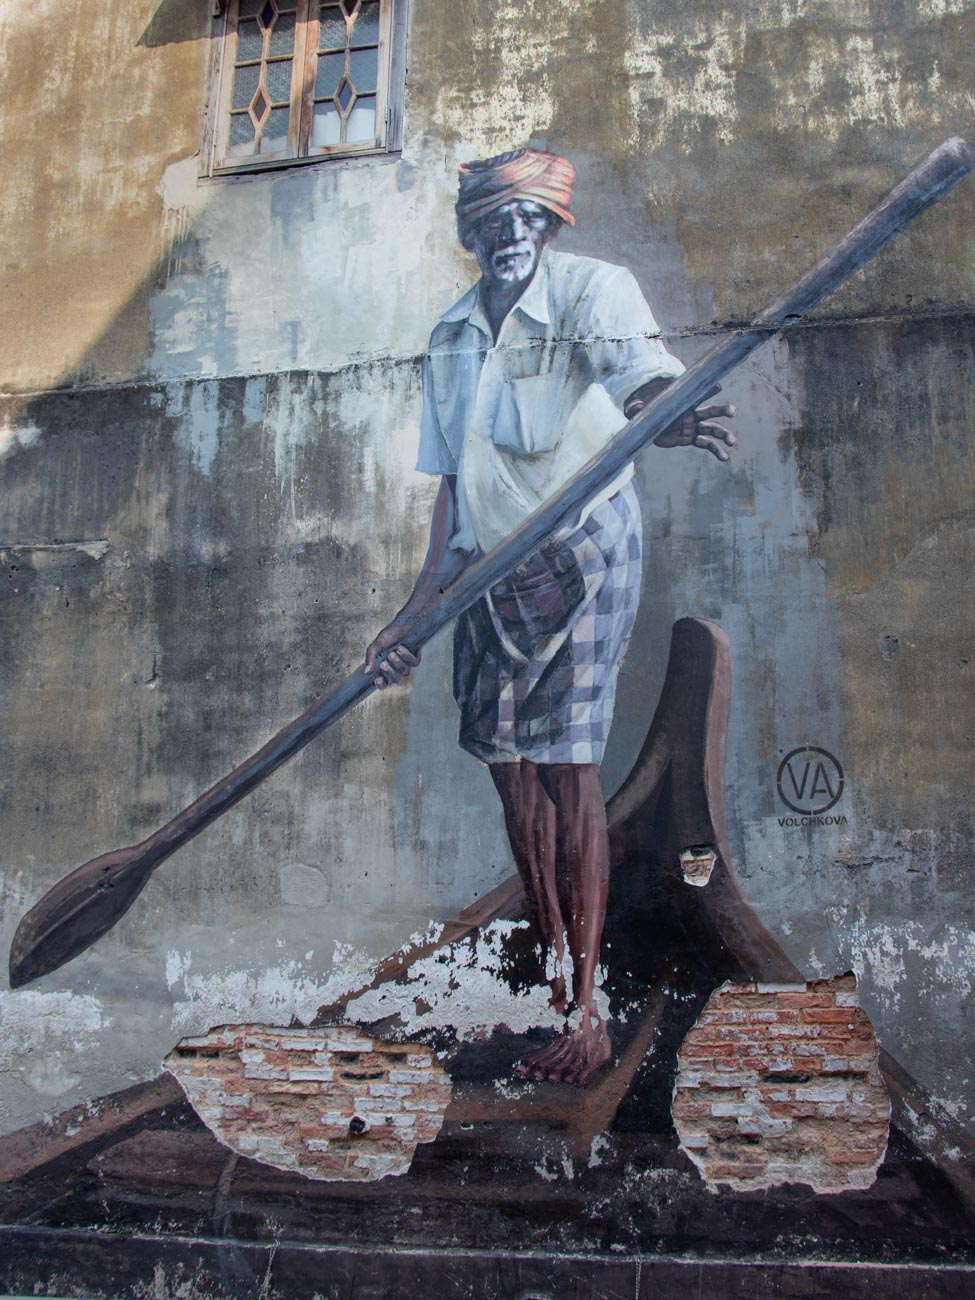 'The Indian Boatmen' - Penang Art Trail - Things to see and do in Penang